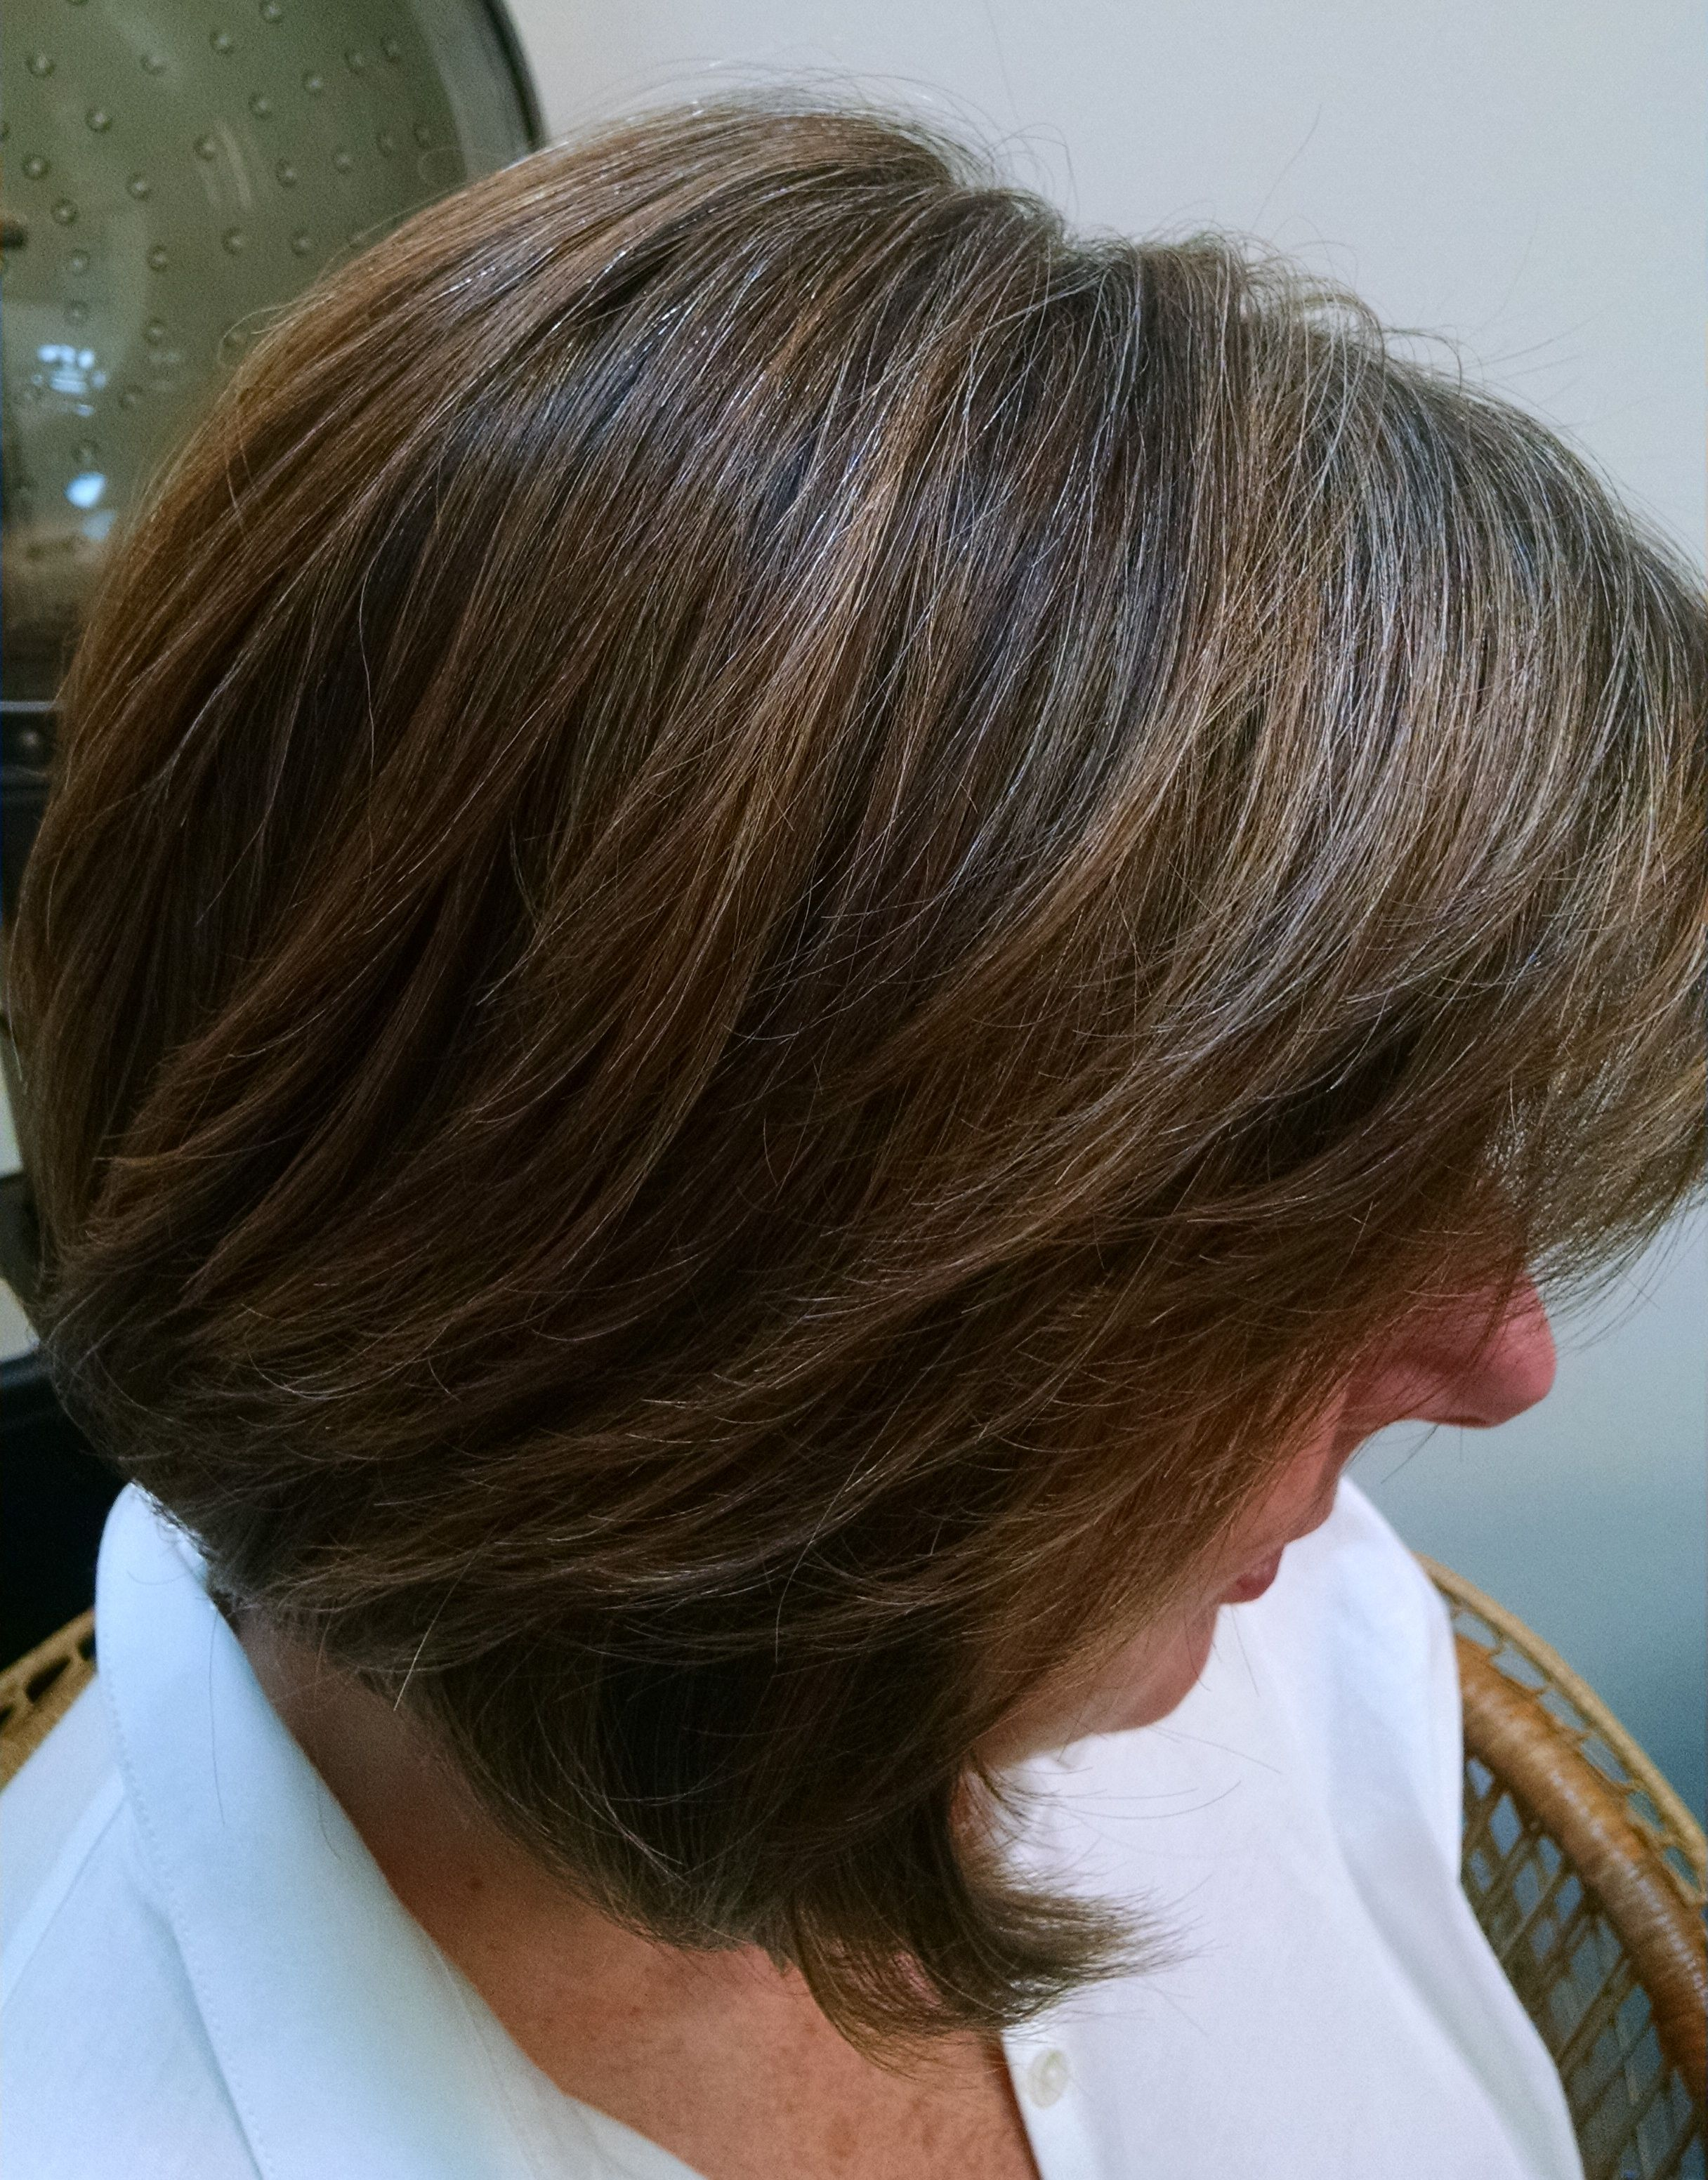 Blending Grey Hair With Highlights And Low Lights Google Search Beauty Favorites Pinterest